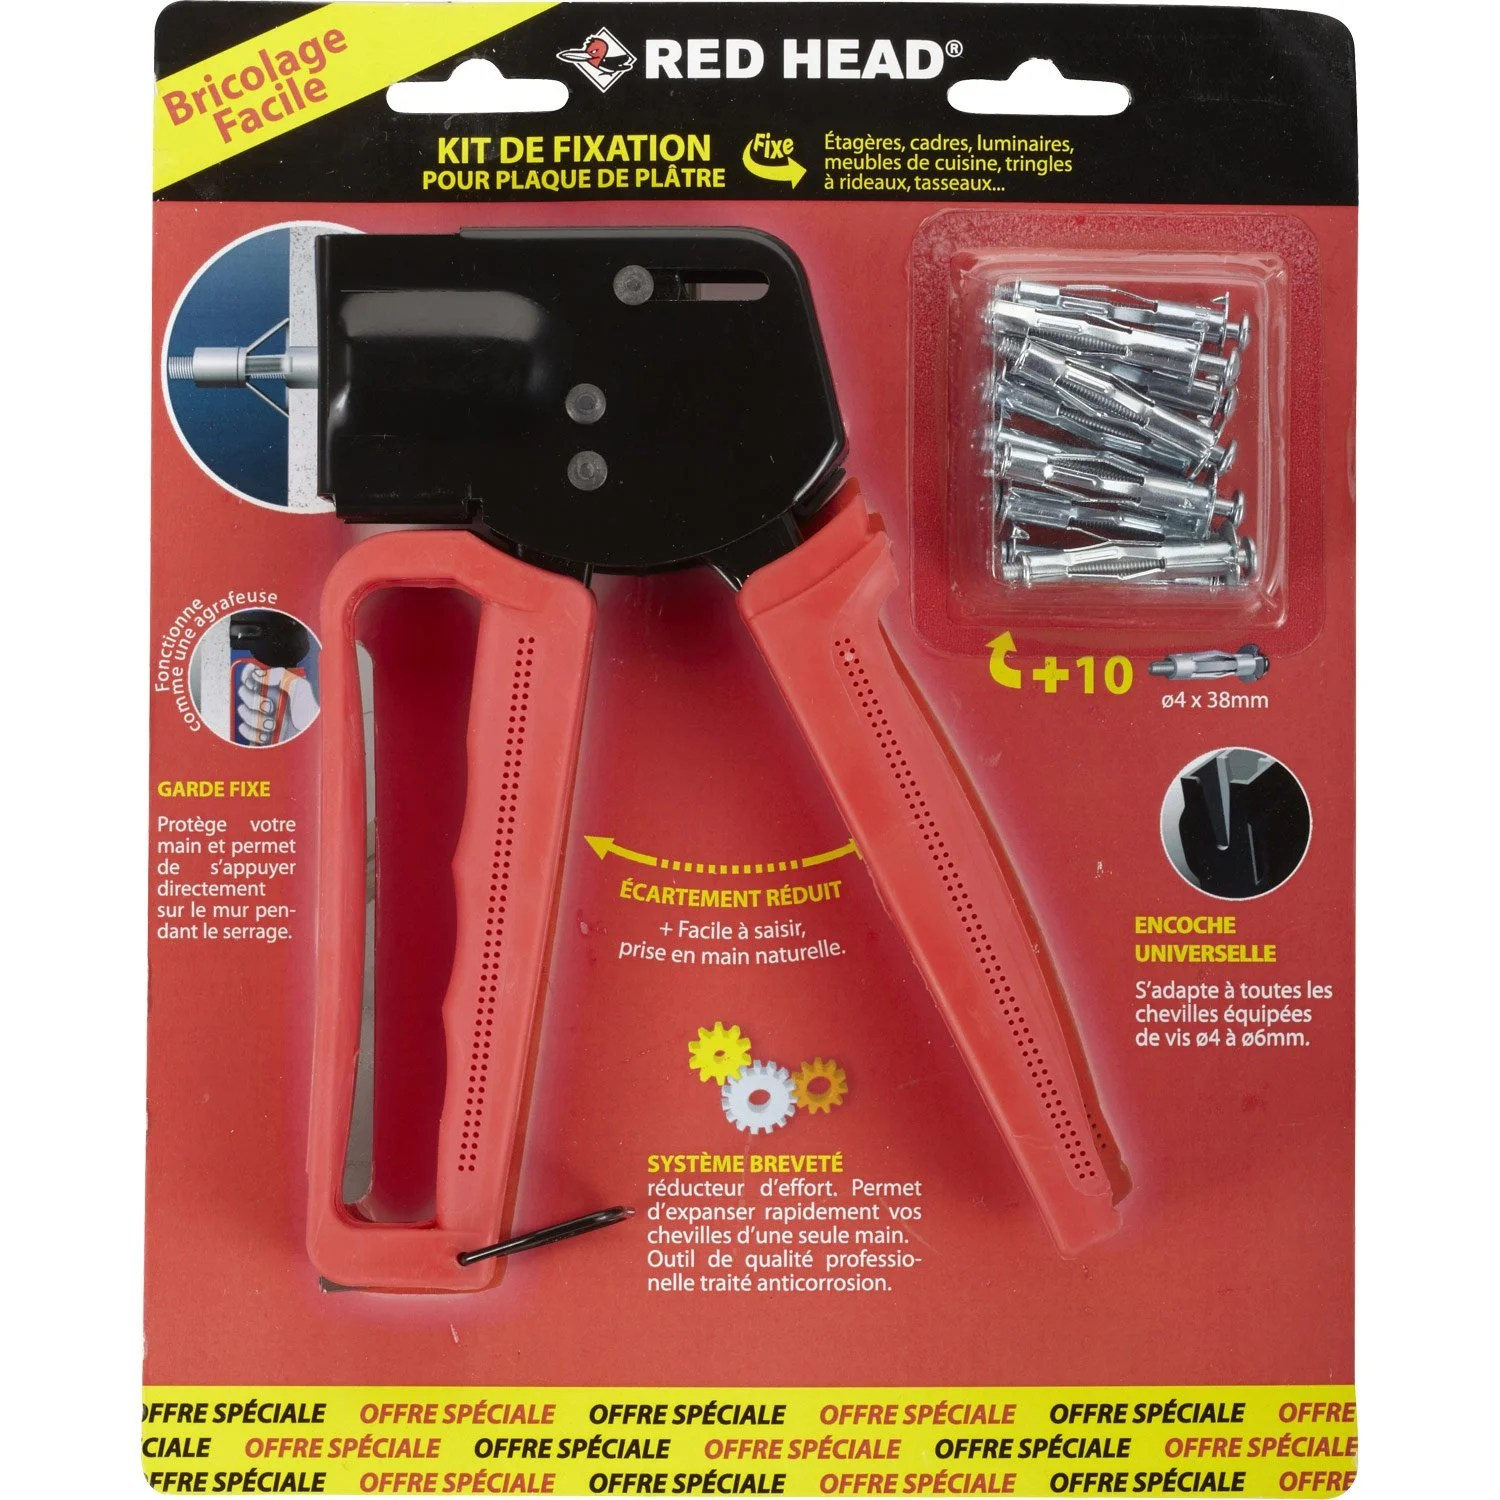 Tole Plastique Leroy Merlin Kit Pince + Chevilles Métal à Expansion Rhf Red Head, Diam